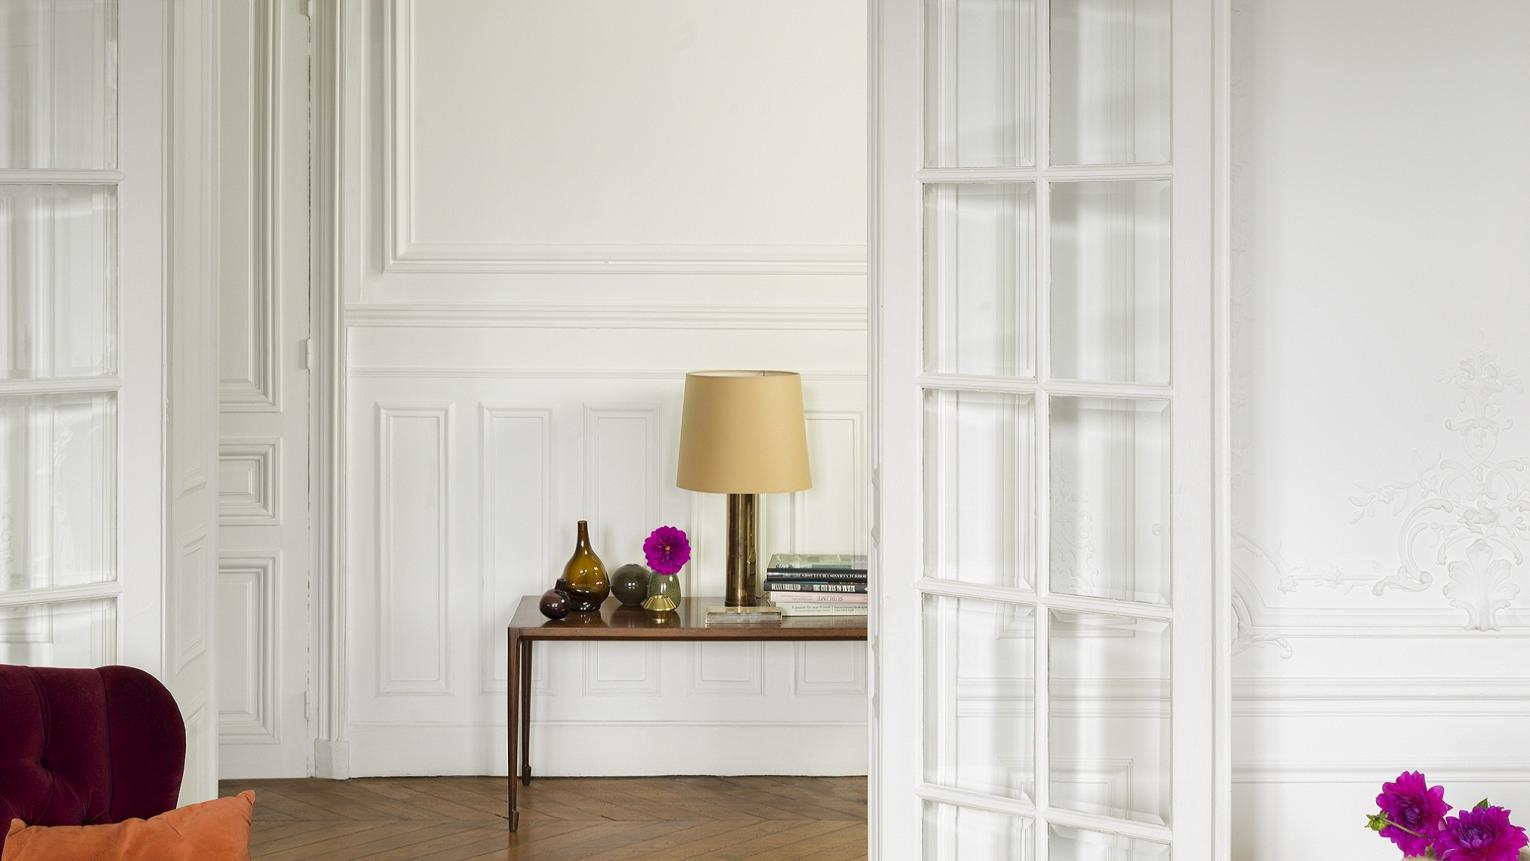 Create an elegant French decor that emulates Parisian style by layering different shades of white paint.